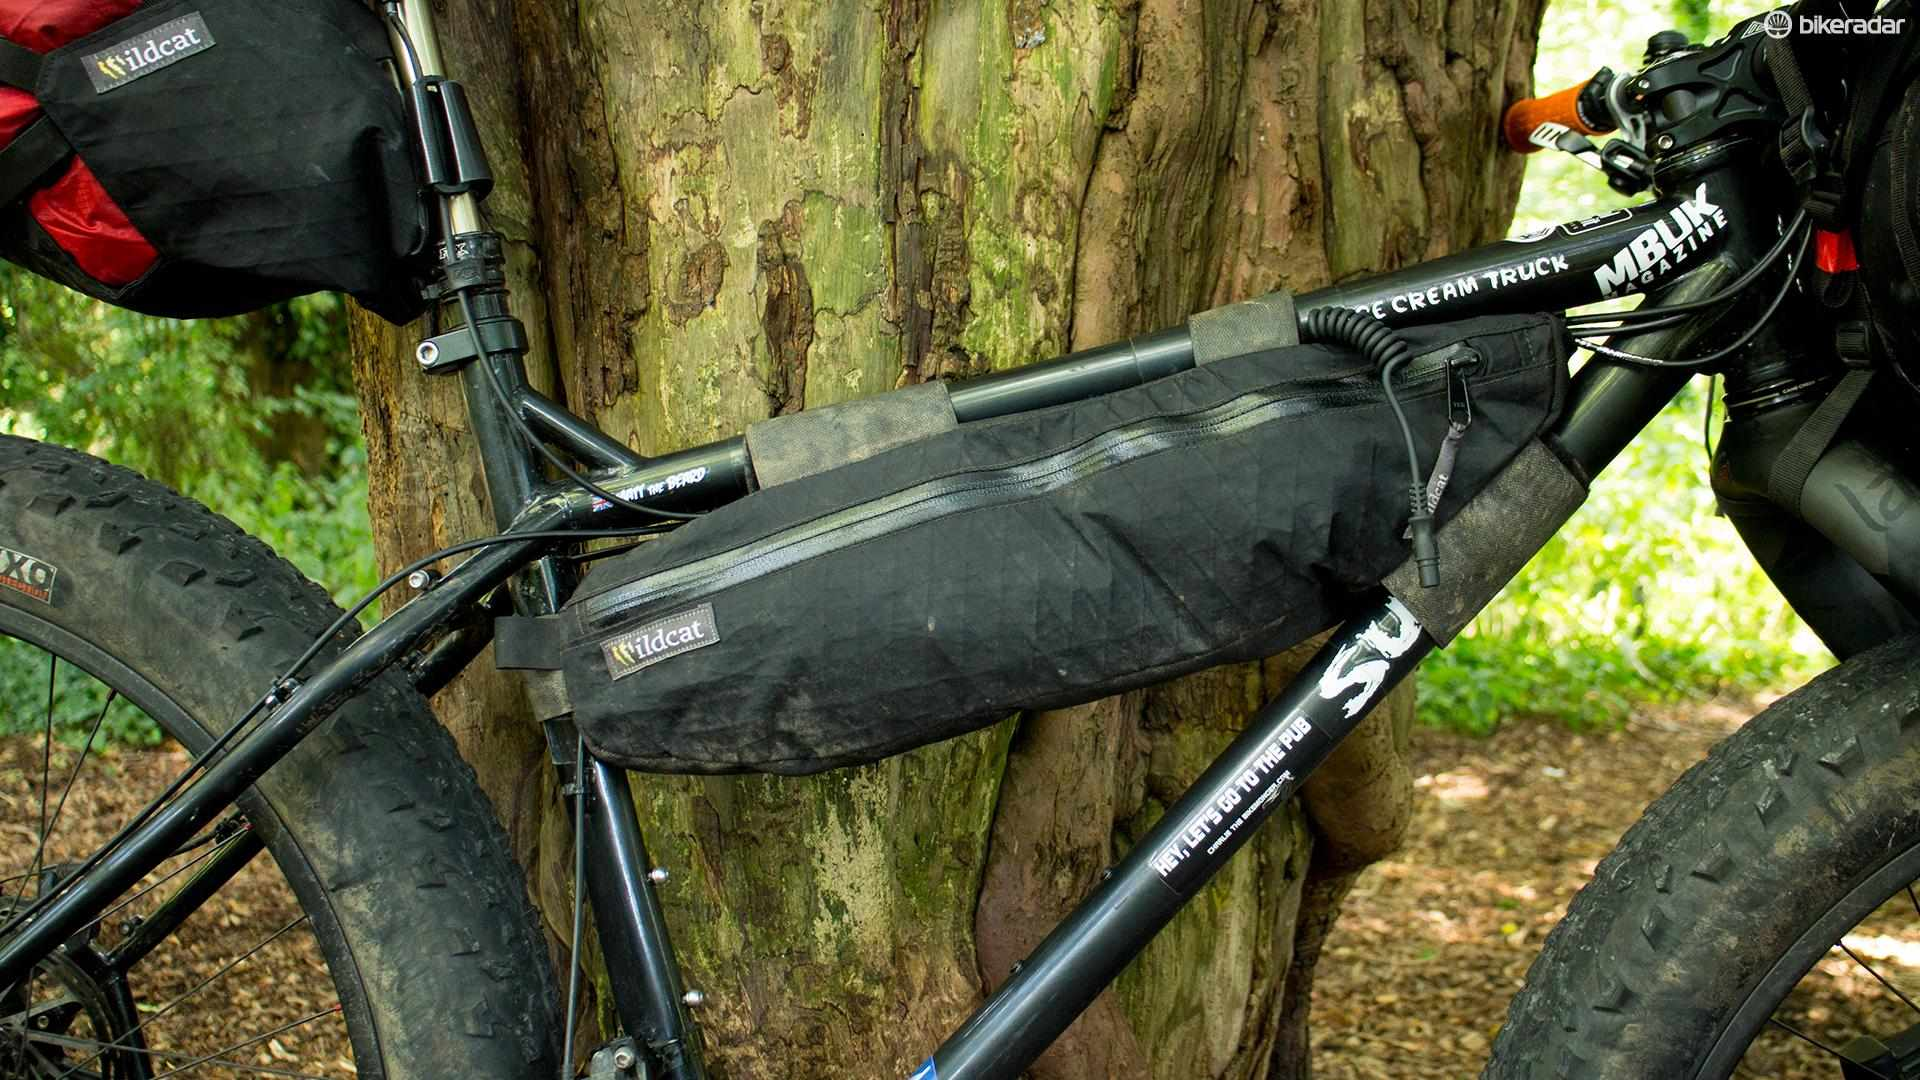 Wildcat's Gear Ocelot frame bag is a versatile solution that'll suit both bikepackers and commuters